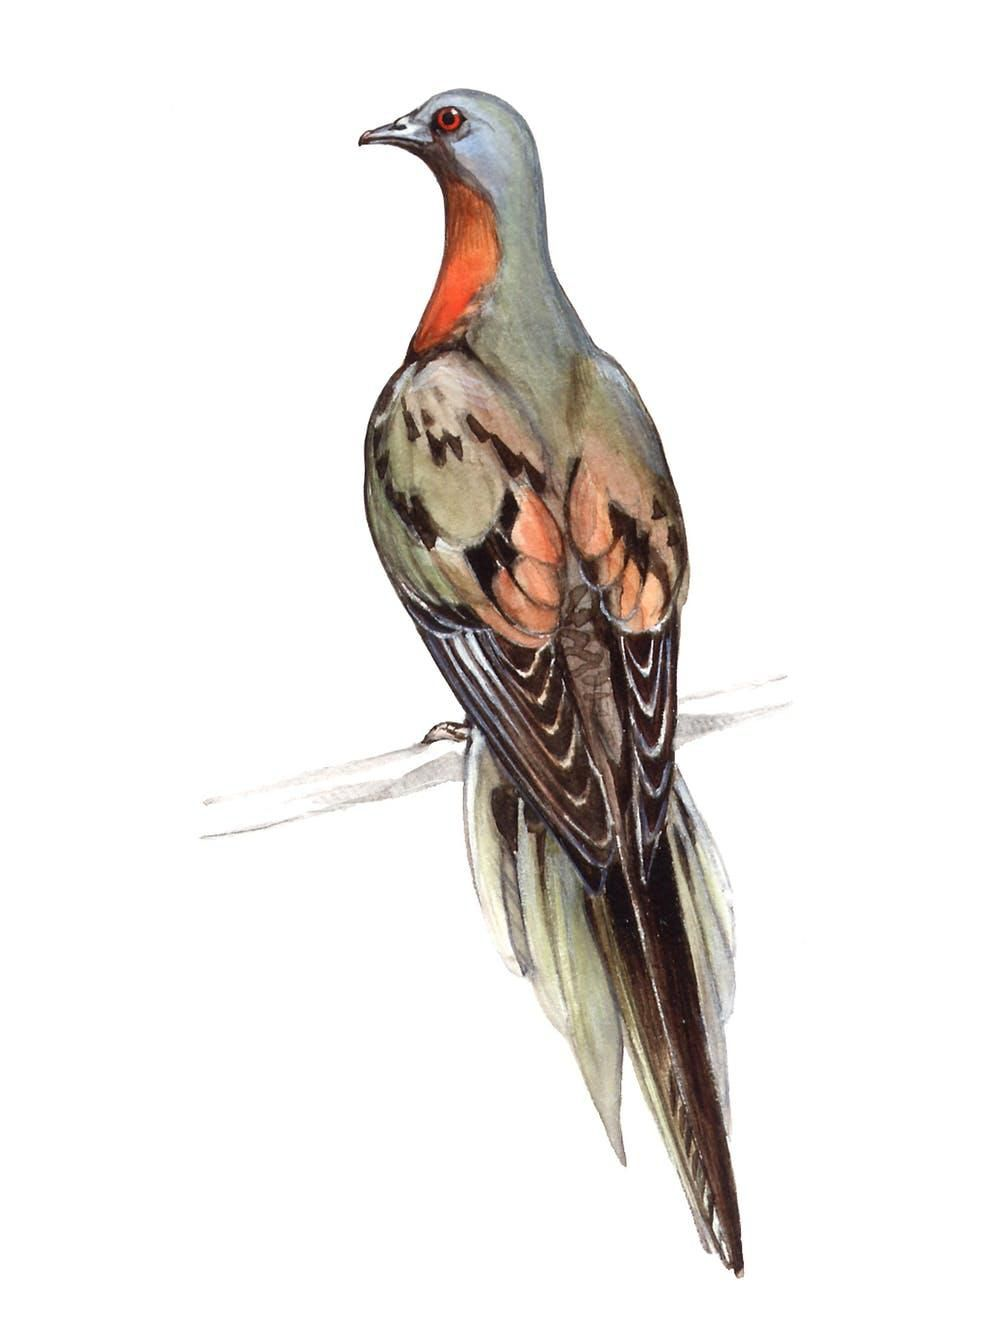 You won't see another passenger pigeon.